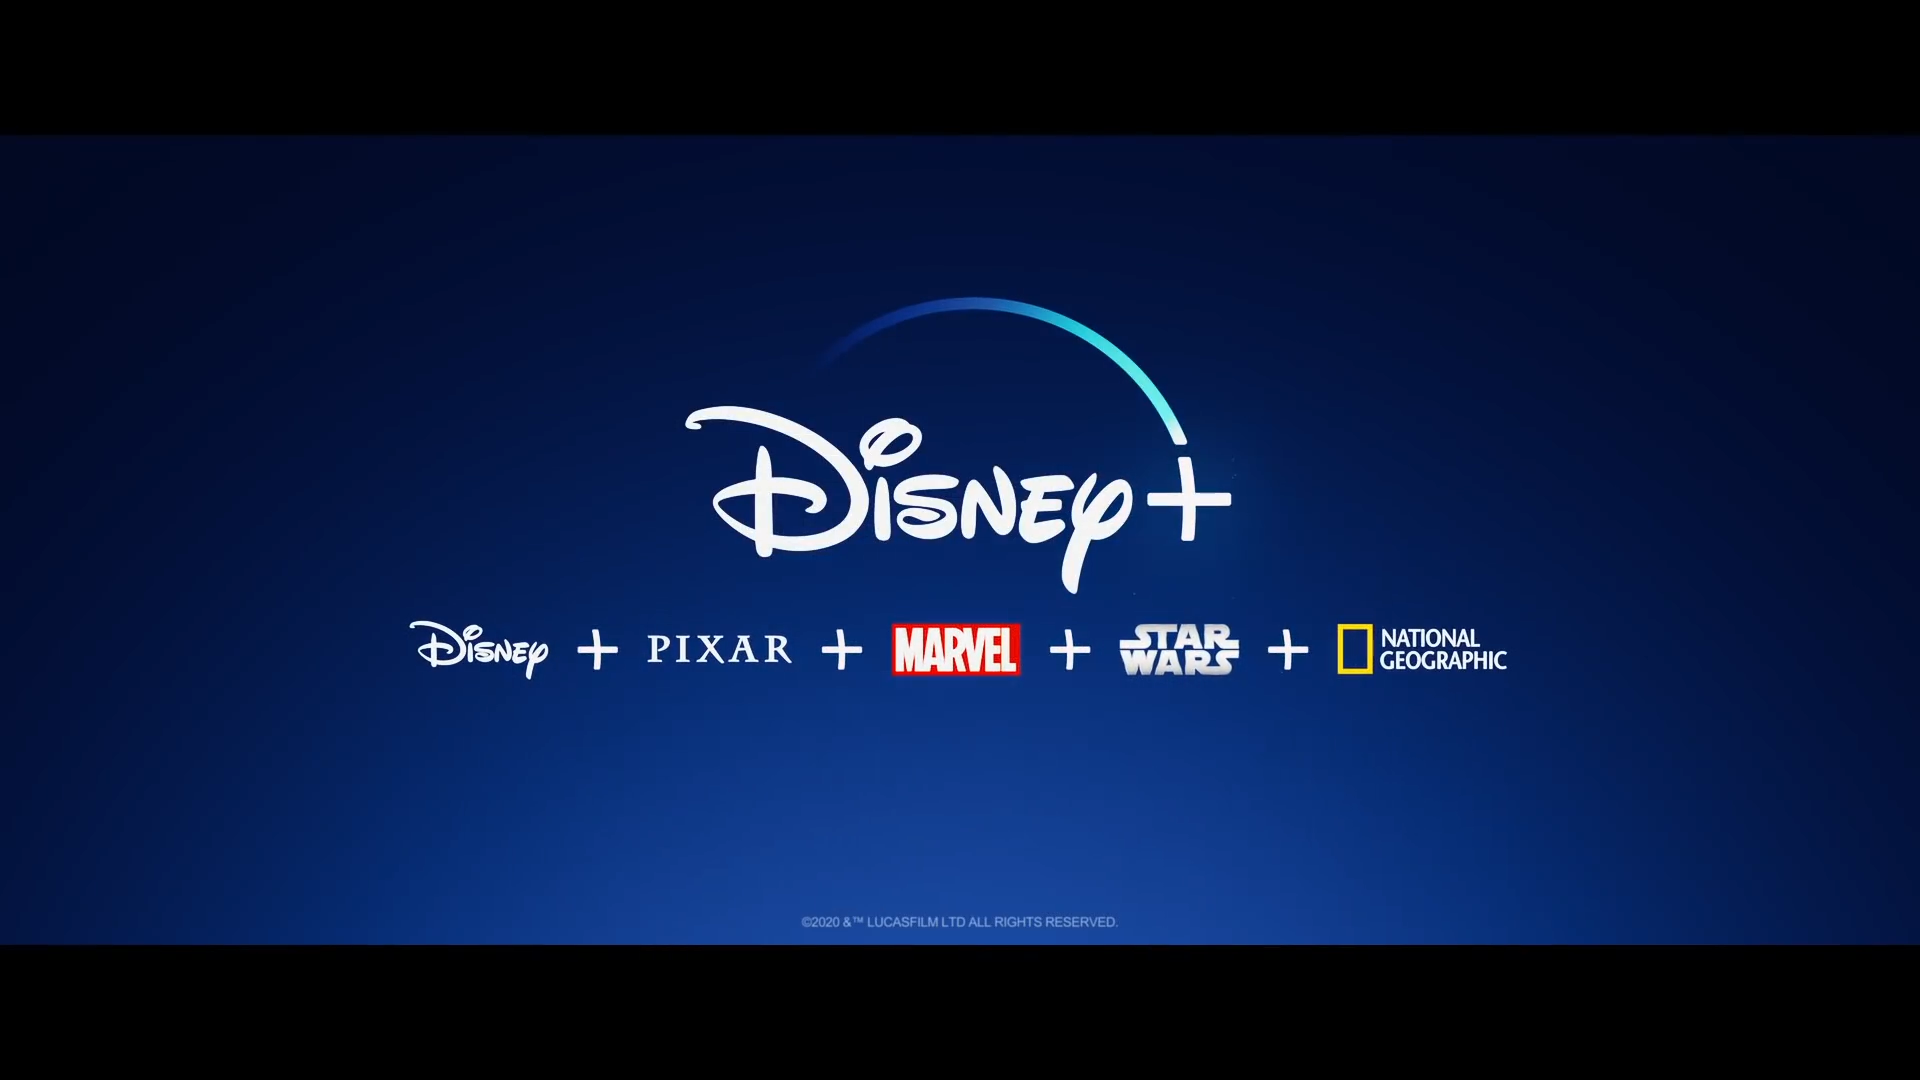 Video: Netflix, Disney Plus land Emmy nominations, Apple launches MagSafe battery pack